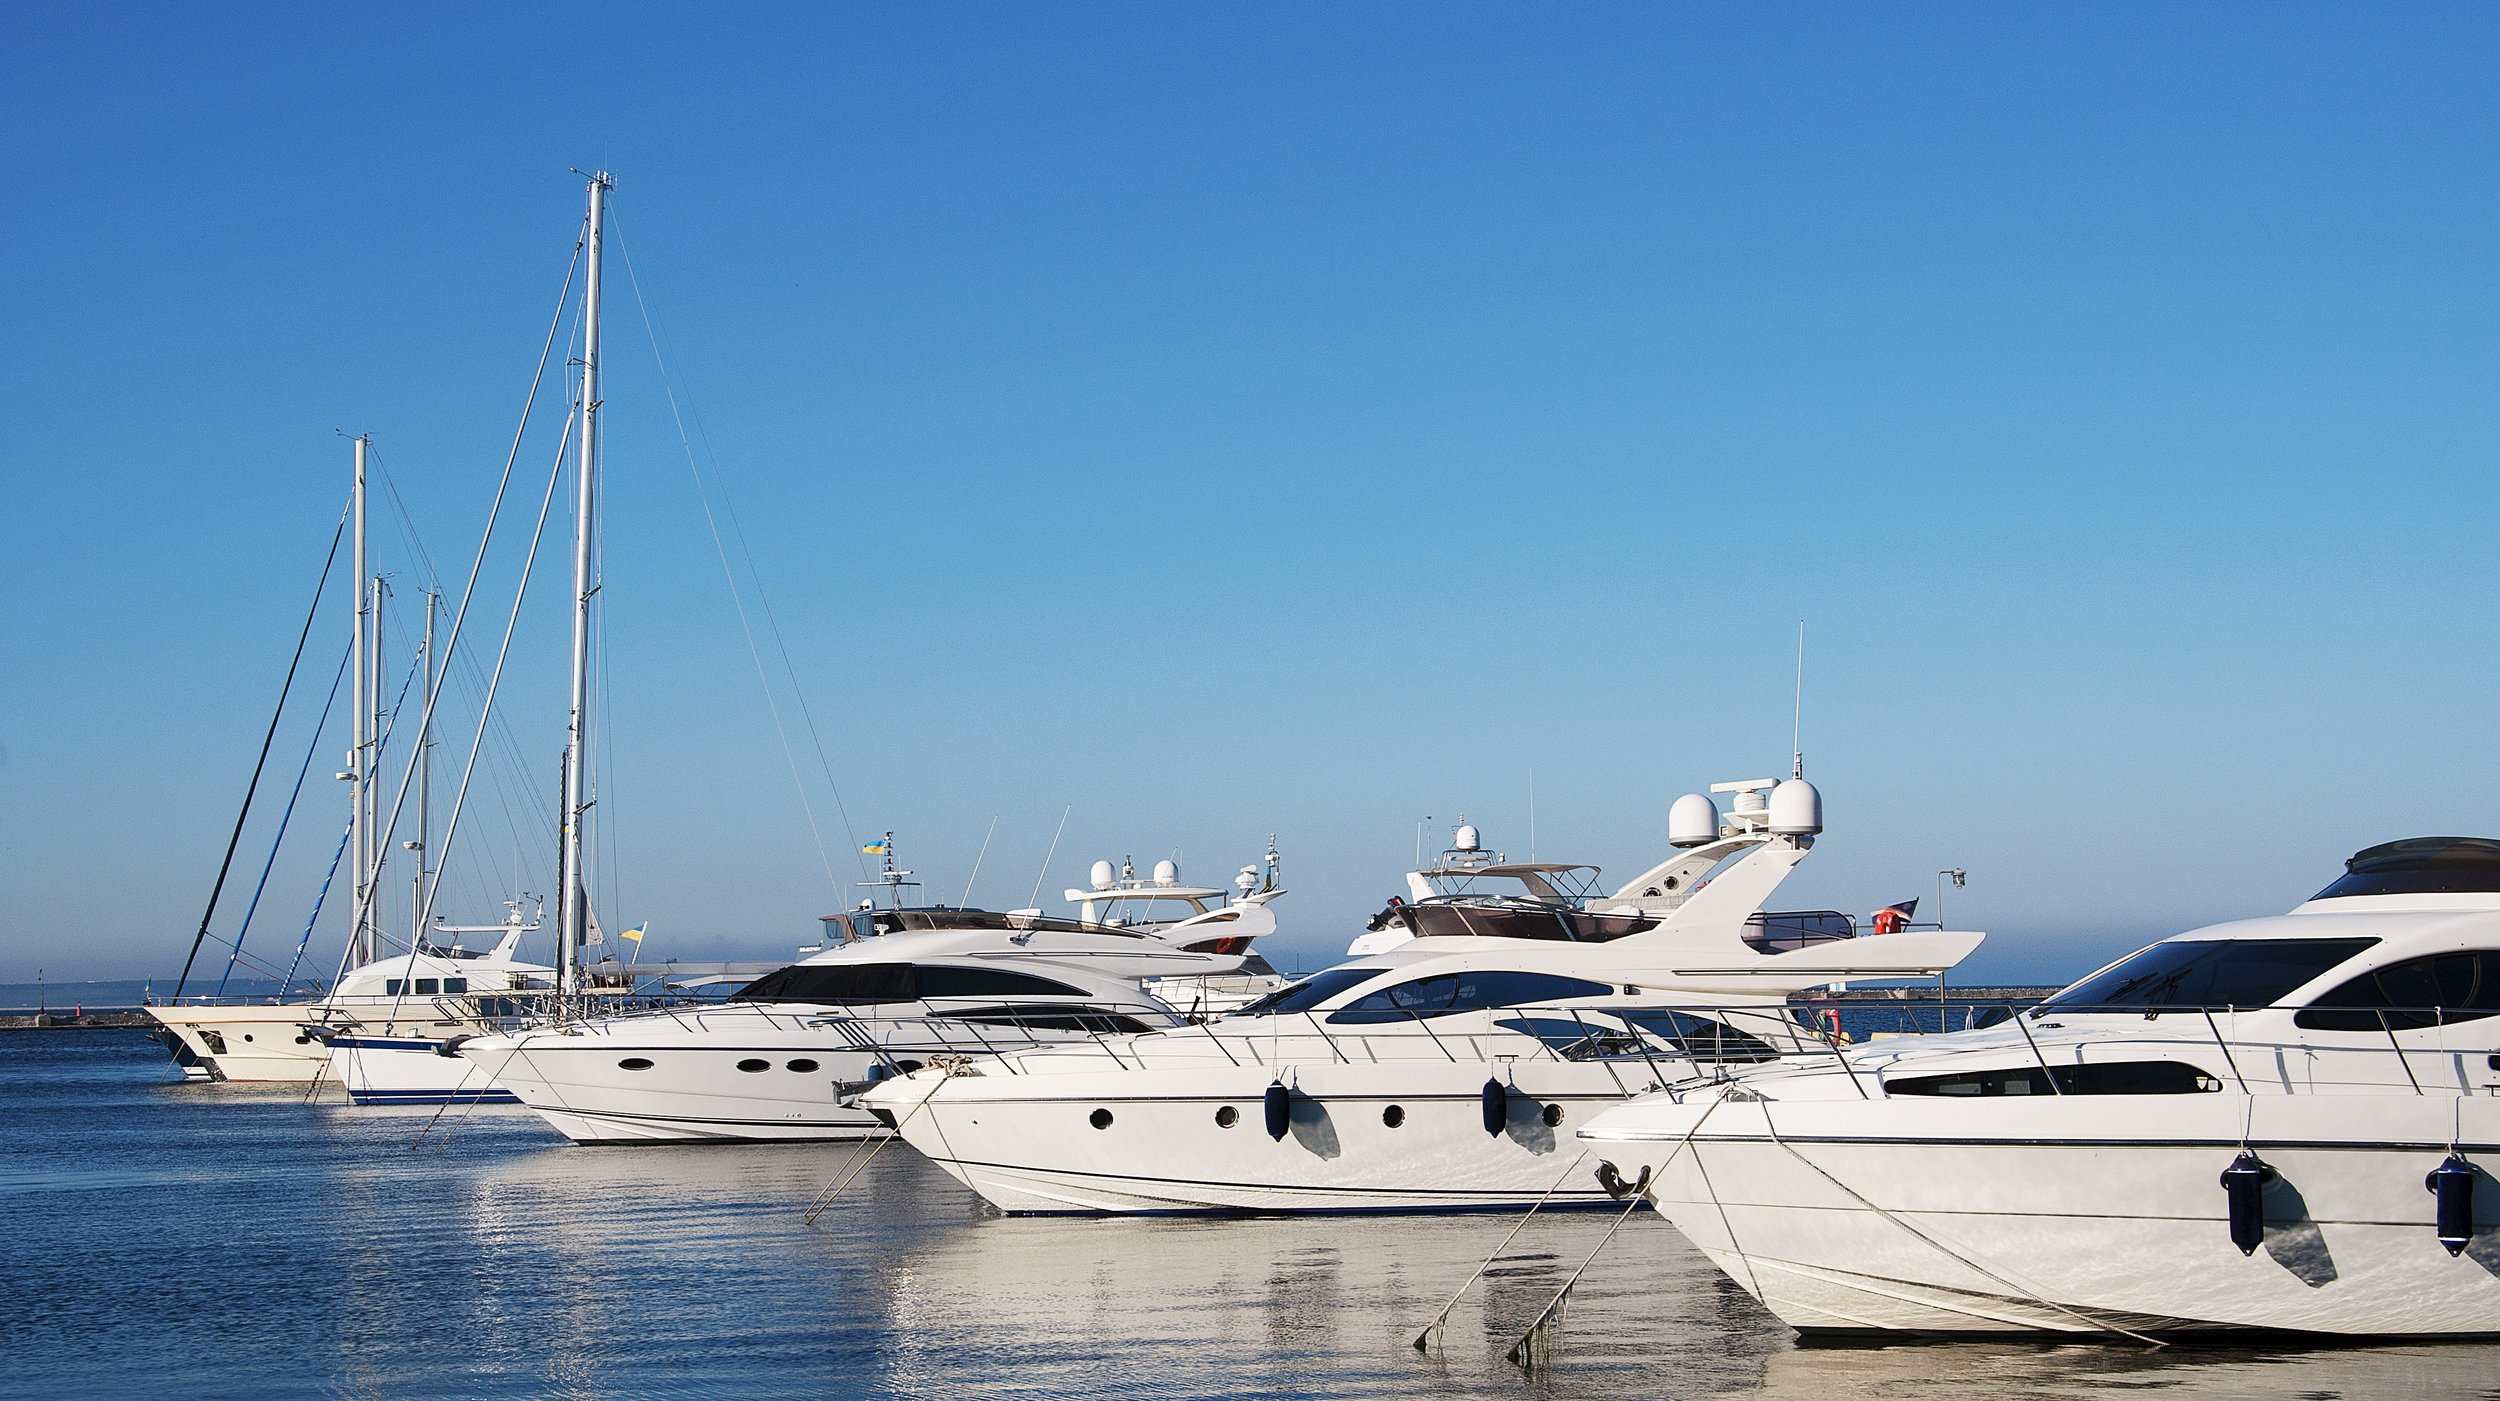 Premier boat and yacht cleaning and management services in Daytona beach, New Smyrna, Flagler Beach, Palm Coast, St Augustine, Titusville, Port Canaveral, Cocoa, Melbourne.